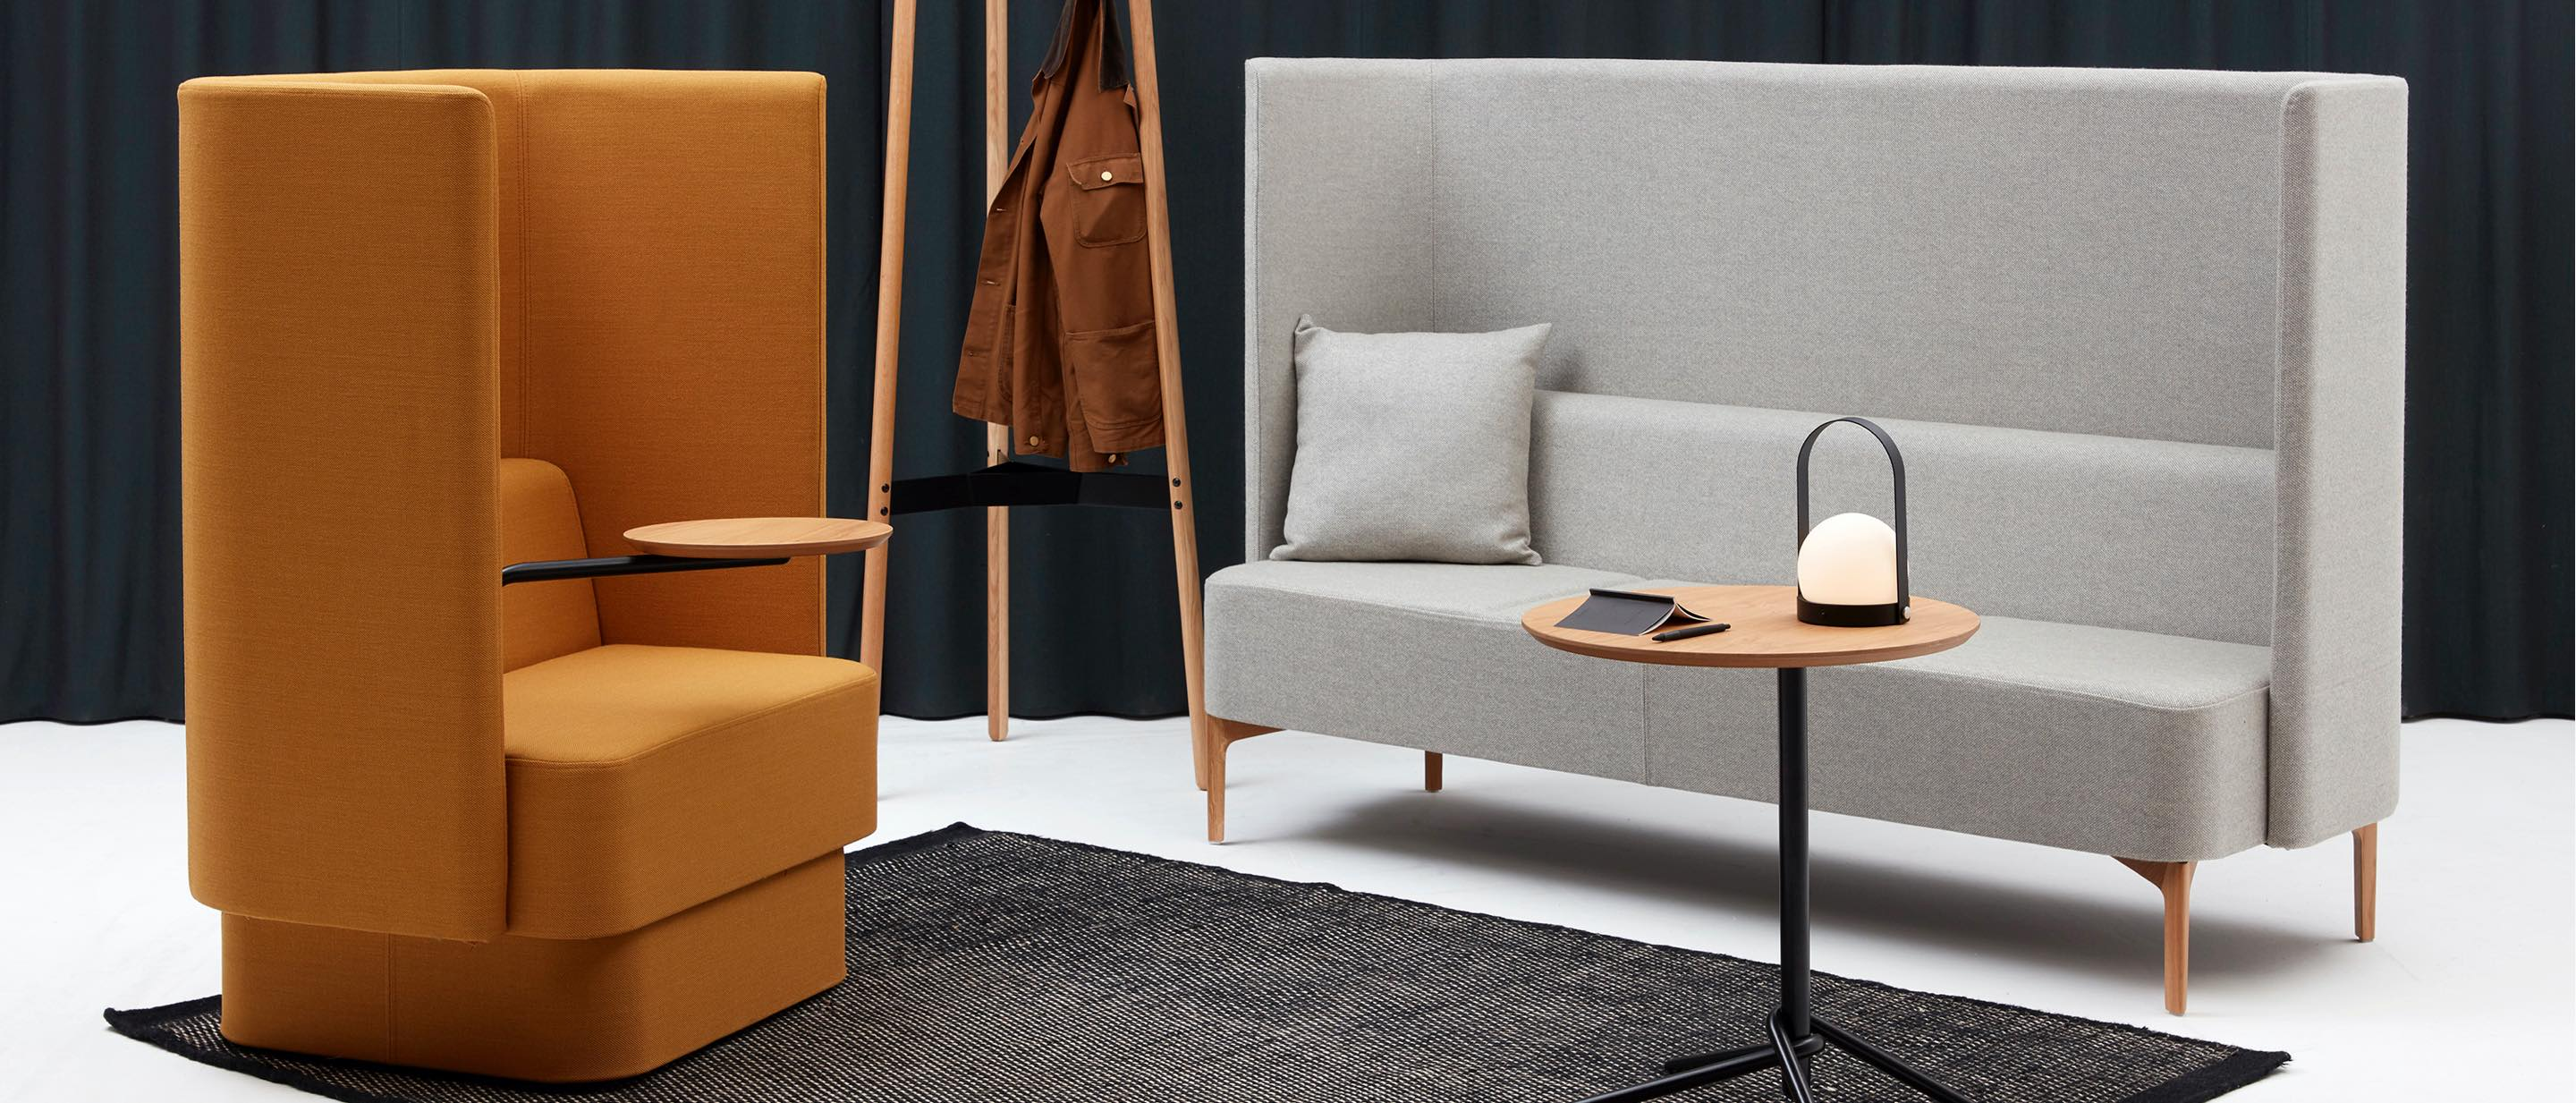 A casual interaction space featuring gray Hush lounge chairs from naughtone.